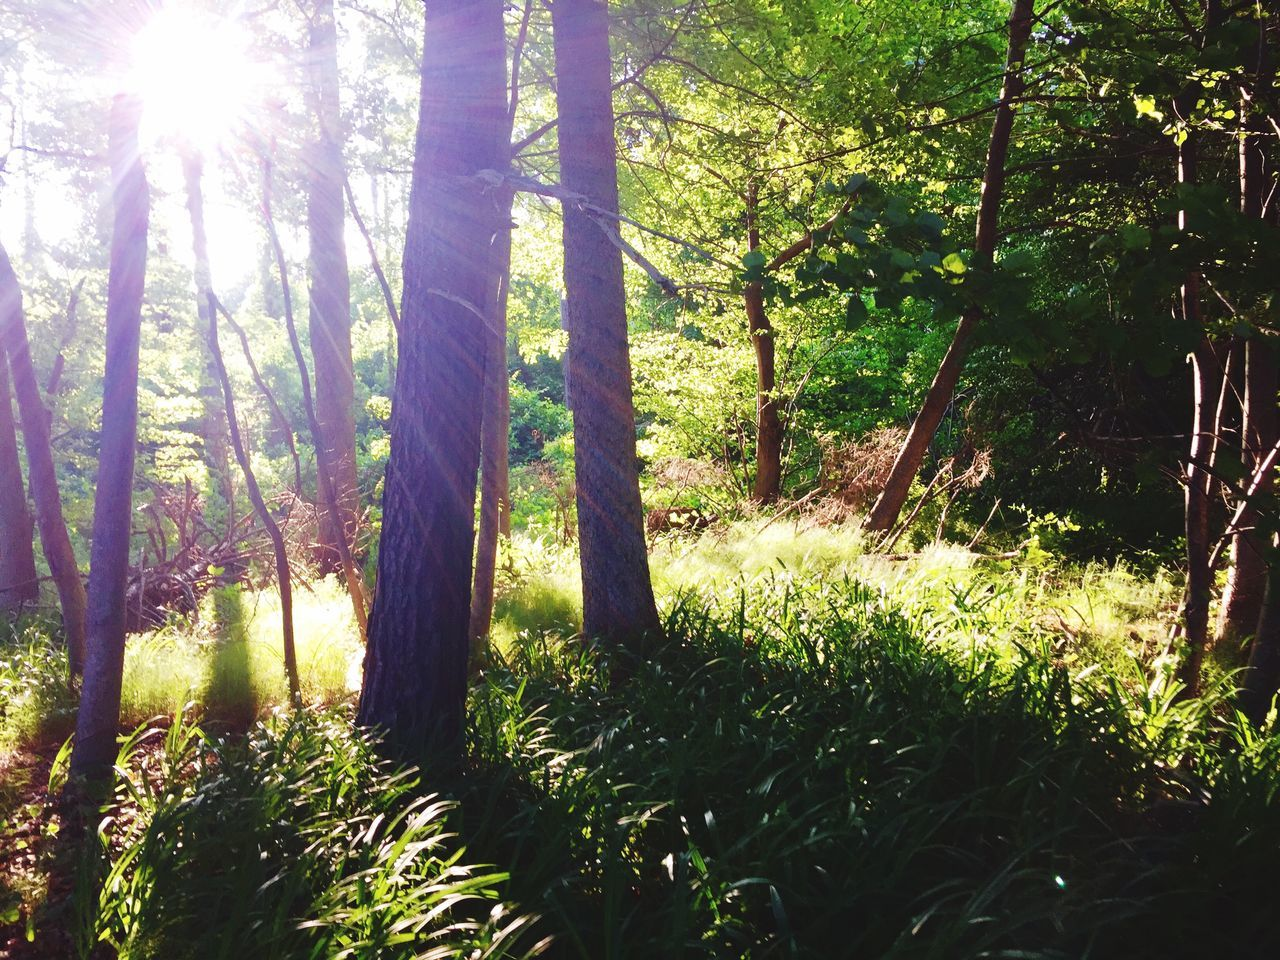 nature, tree, growth, sunlight, forest, sunbeam, tranquility, beauty in nature, tranquil scene, no people, landscape, day, scenics, outdoors, sun, grass, tree trunk